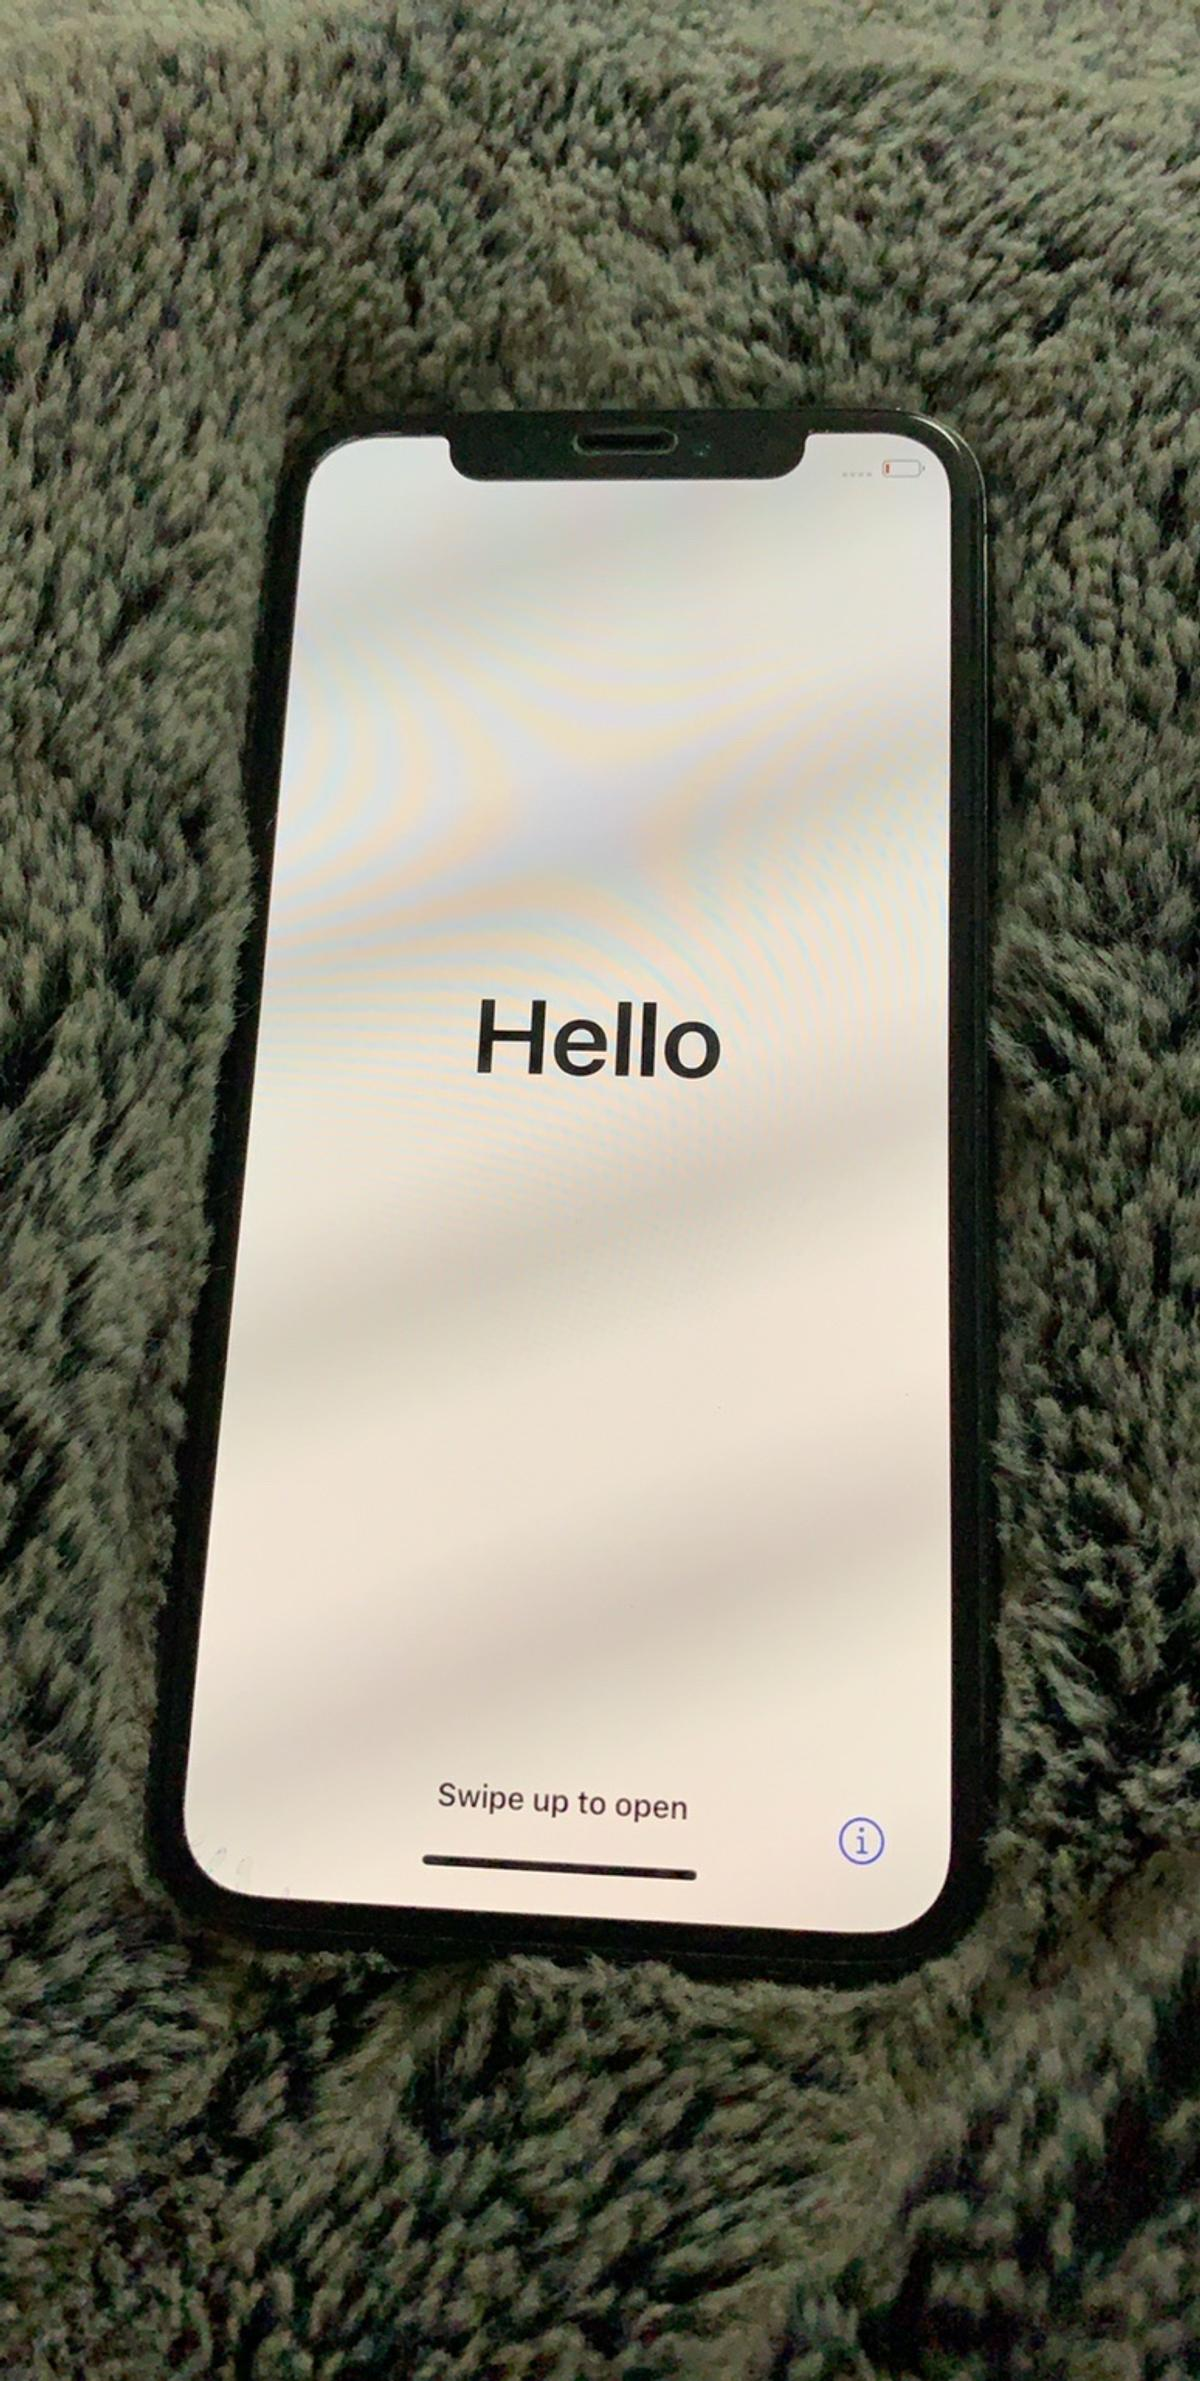 iphone x - 64GB, just had screen repaired by apple so in brand new condition, unlocked, £400